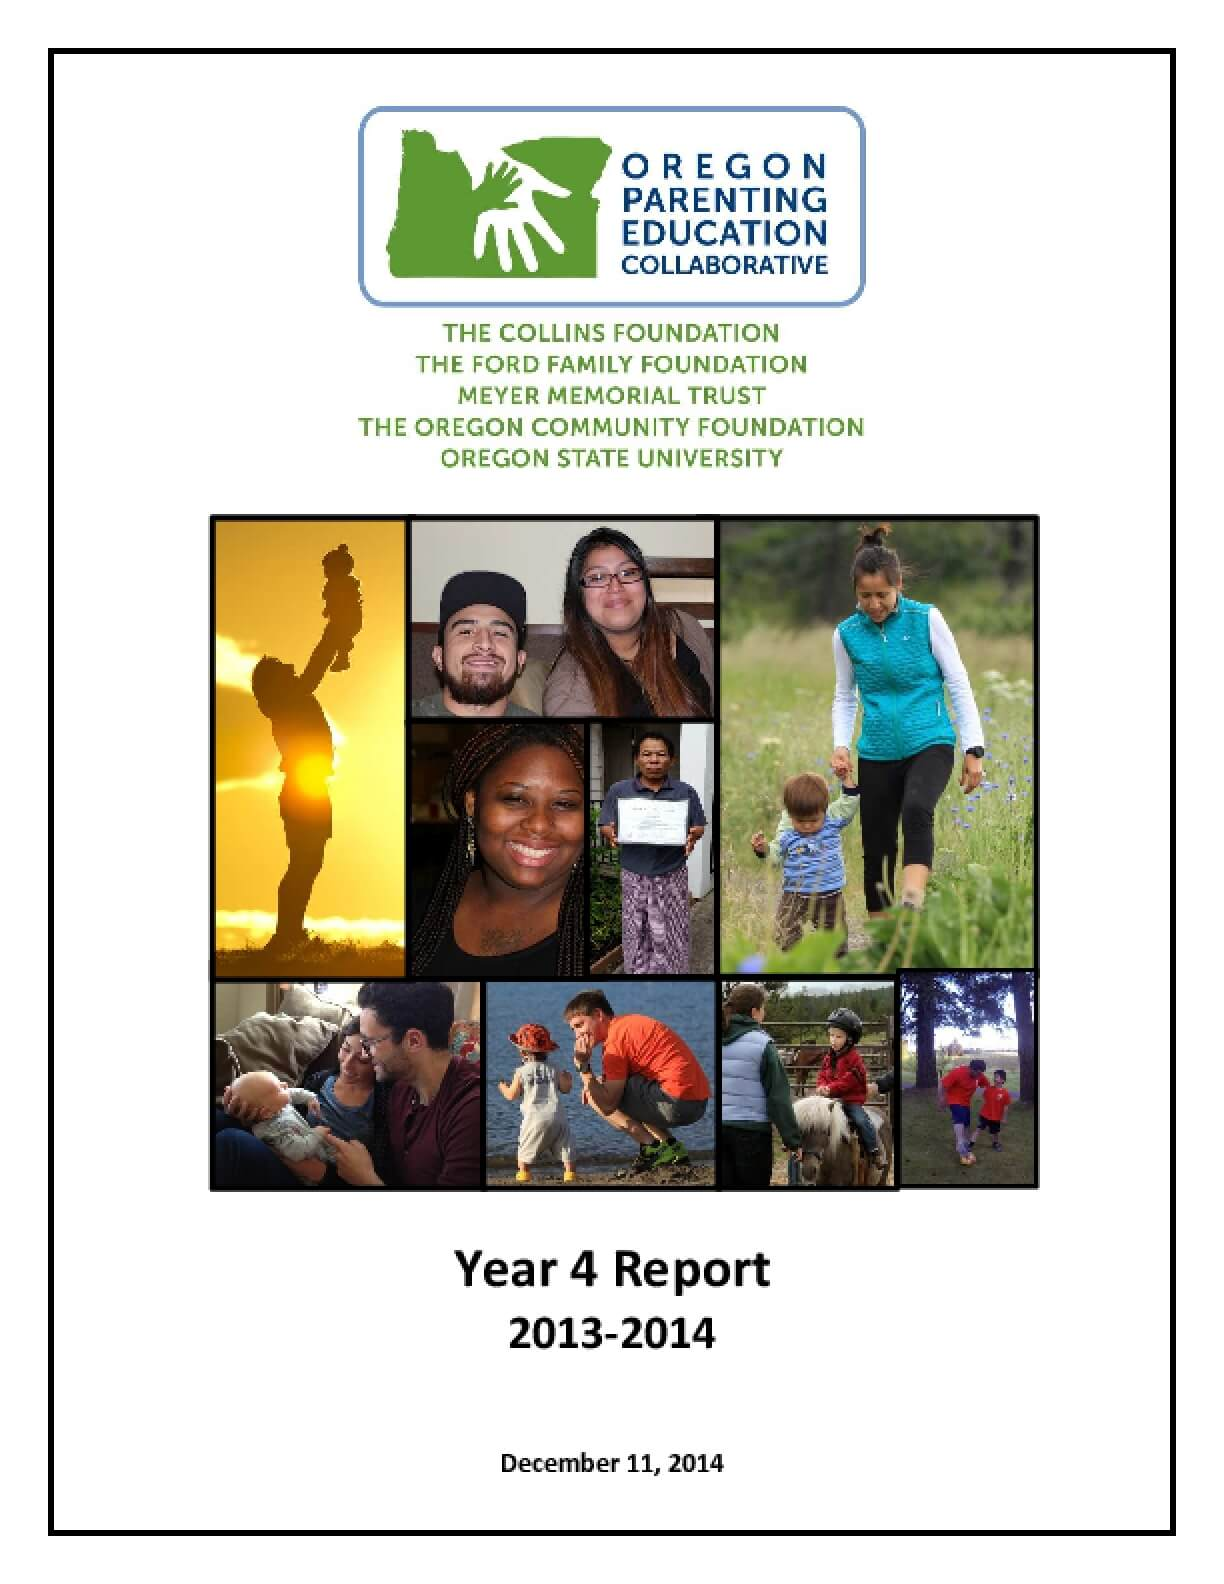 Oregon Parenting Education Collaborative Year 4 Report 2013-2014